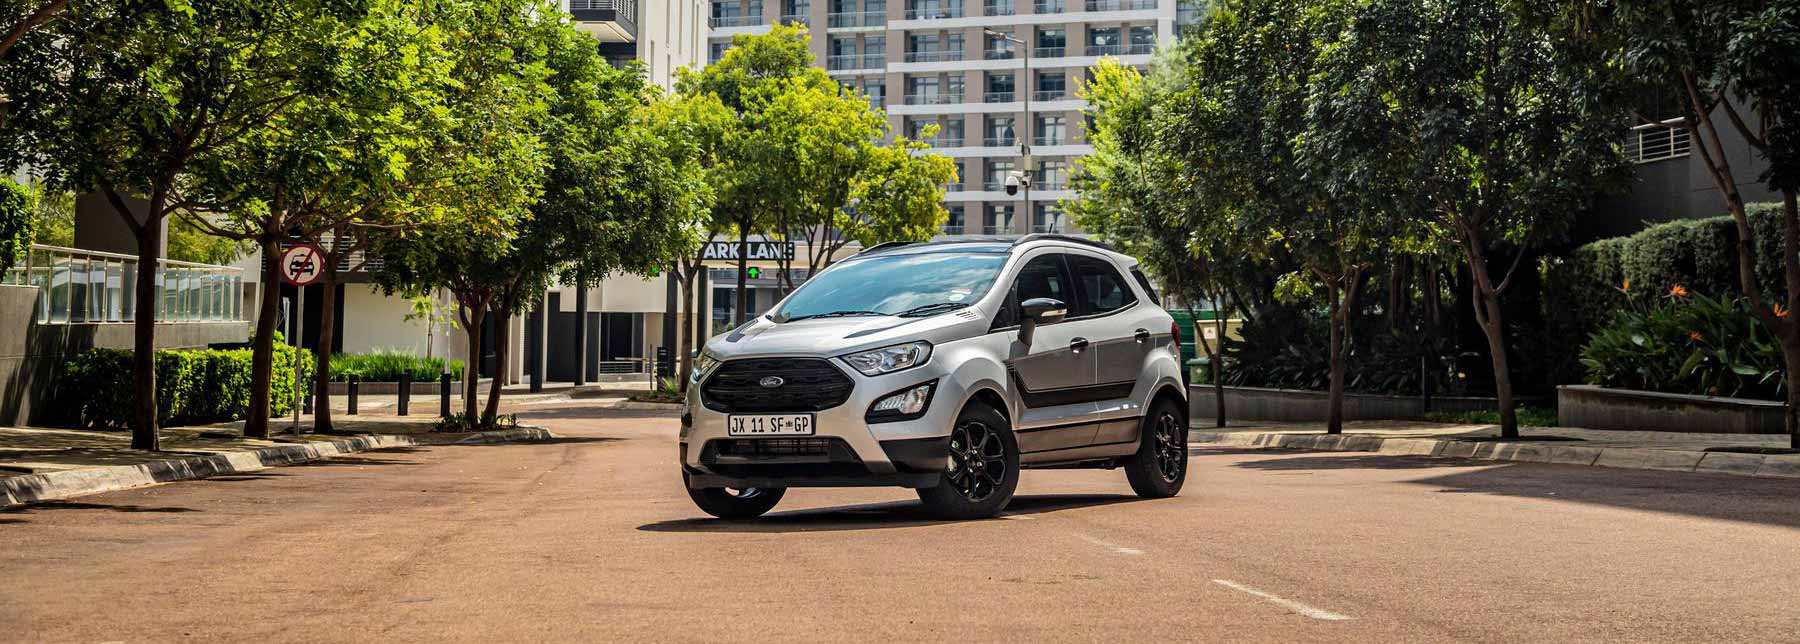 Ford EcoSport blacked out